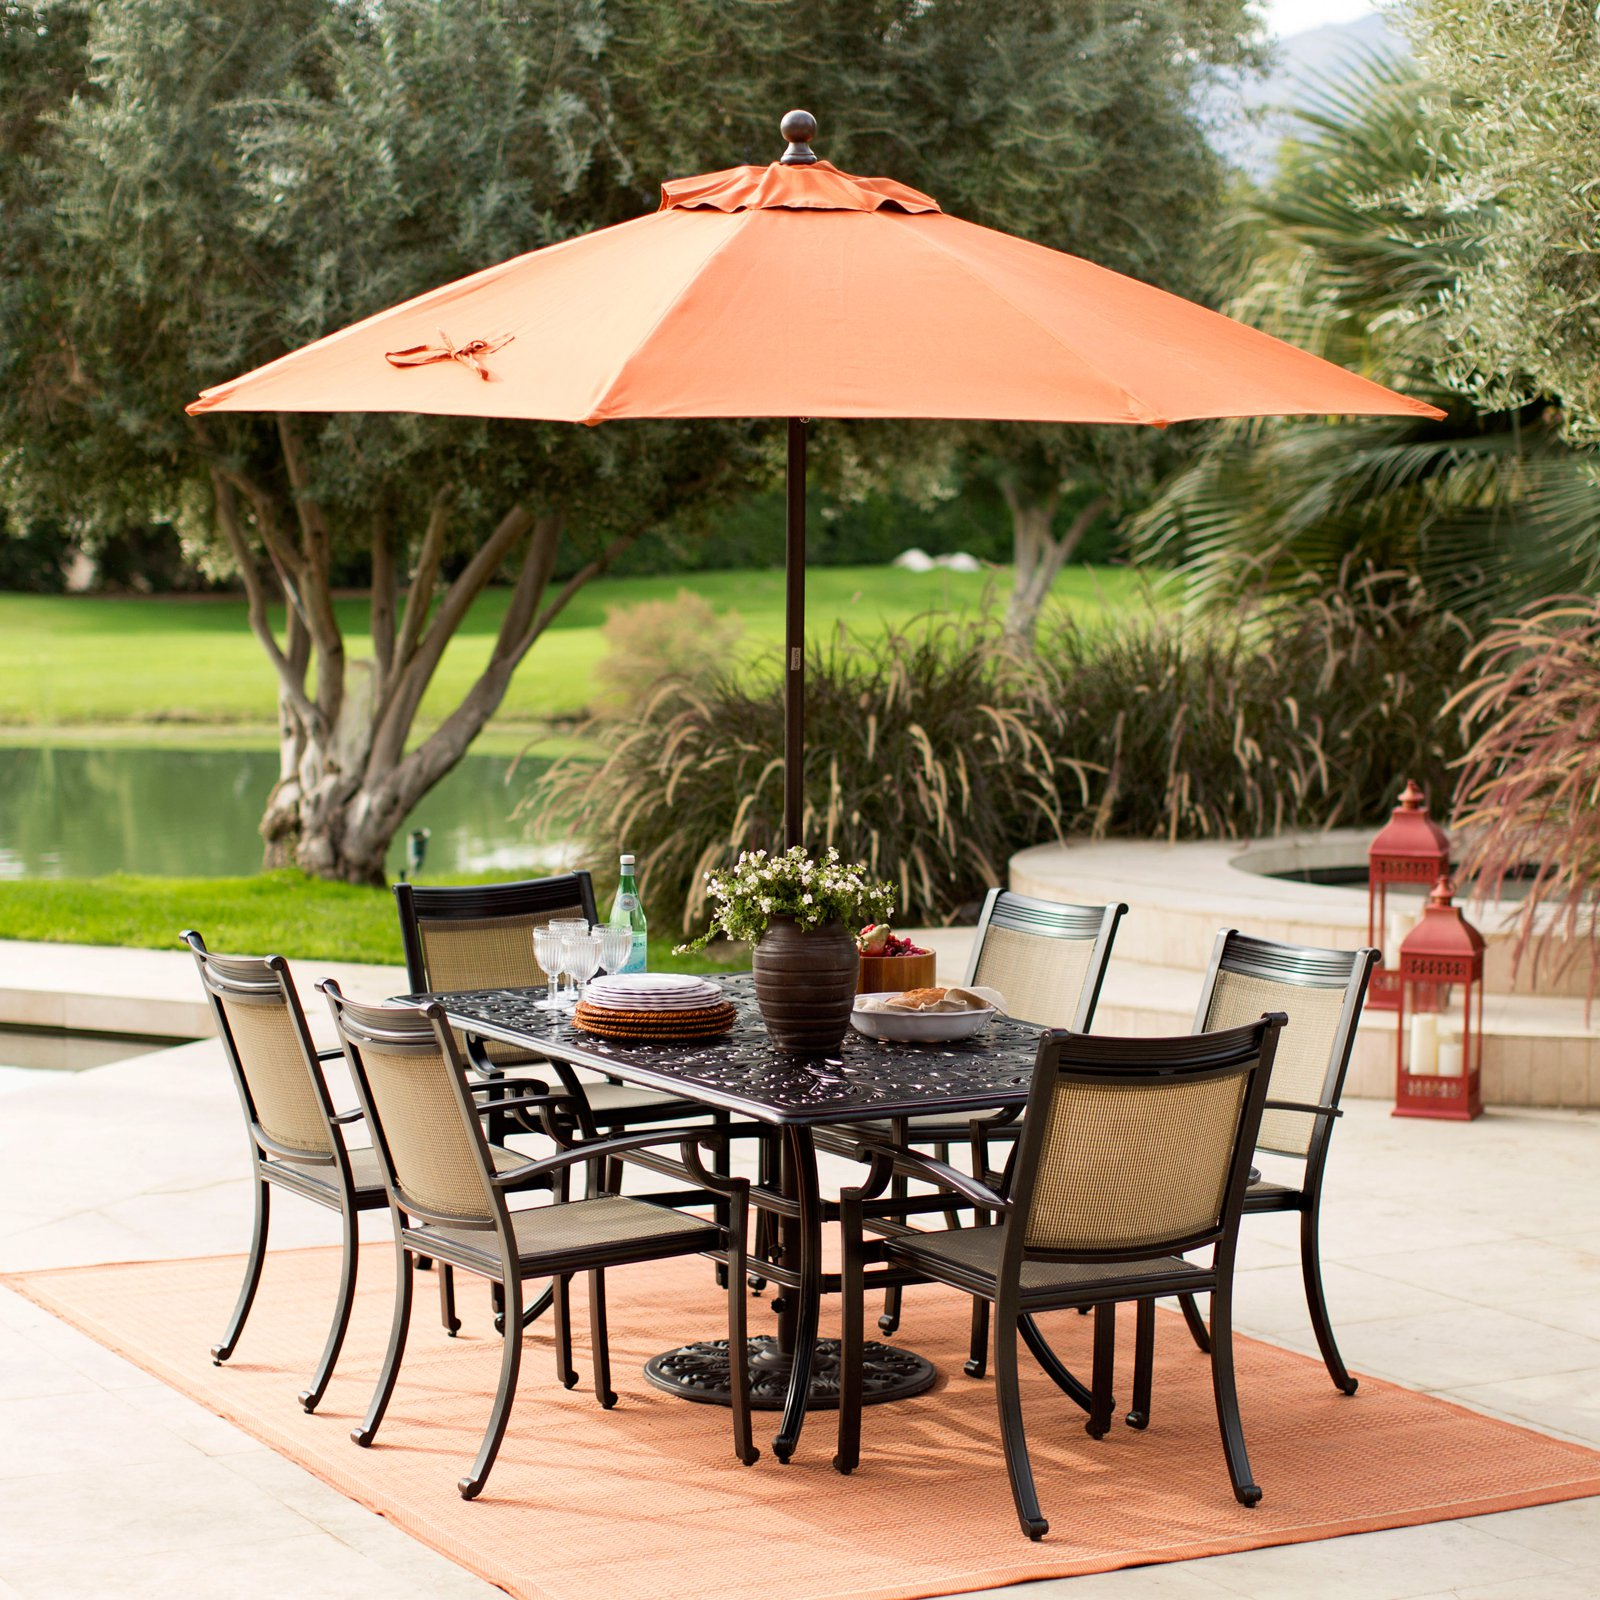 Sunbrella Commercial Grade Aluminum Wind Resistant Patio Umbrella -  Traveller Location